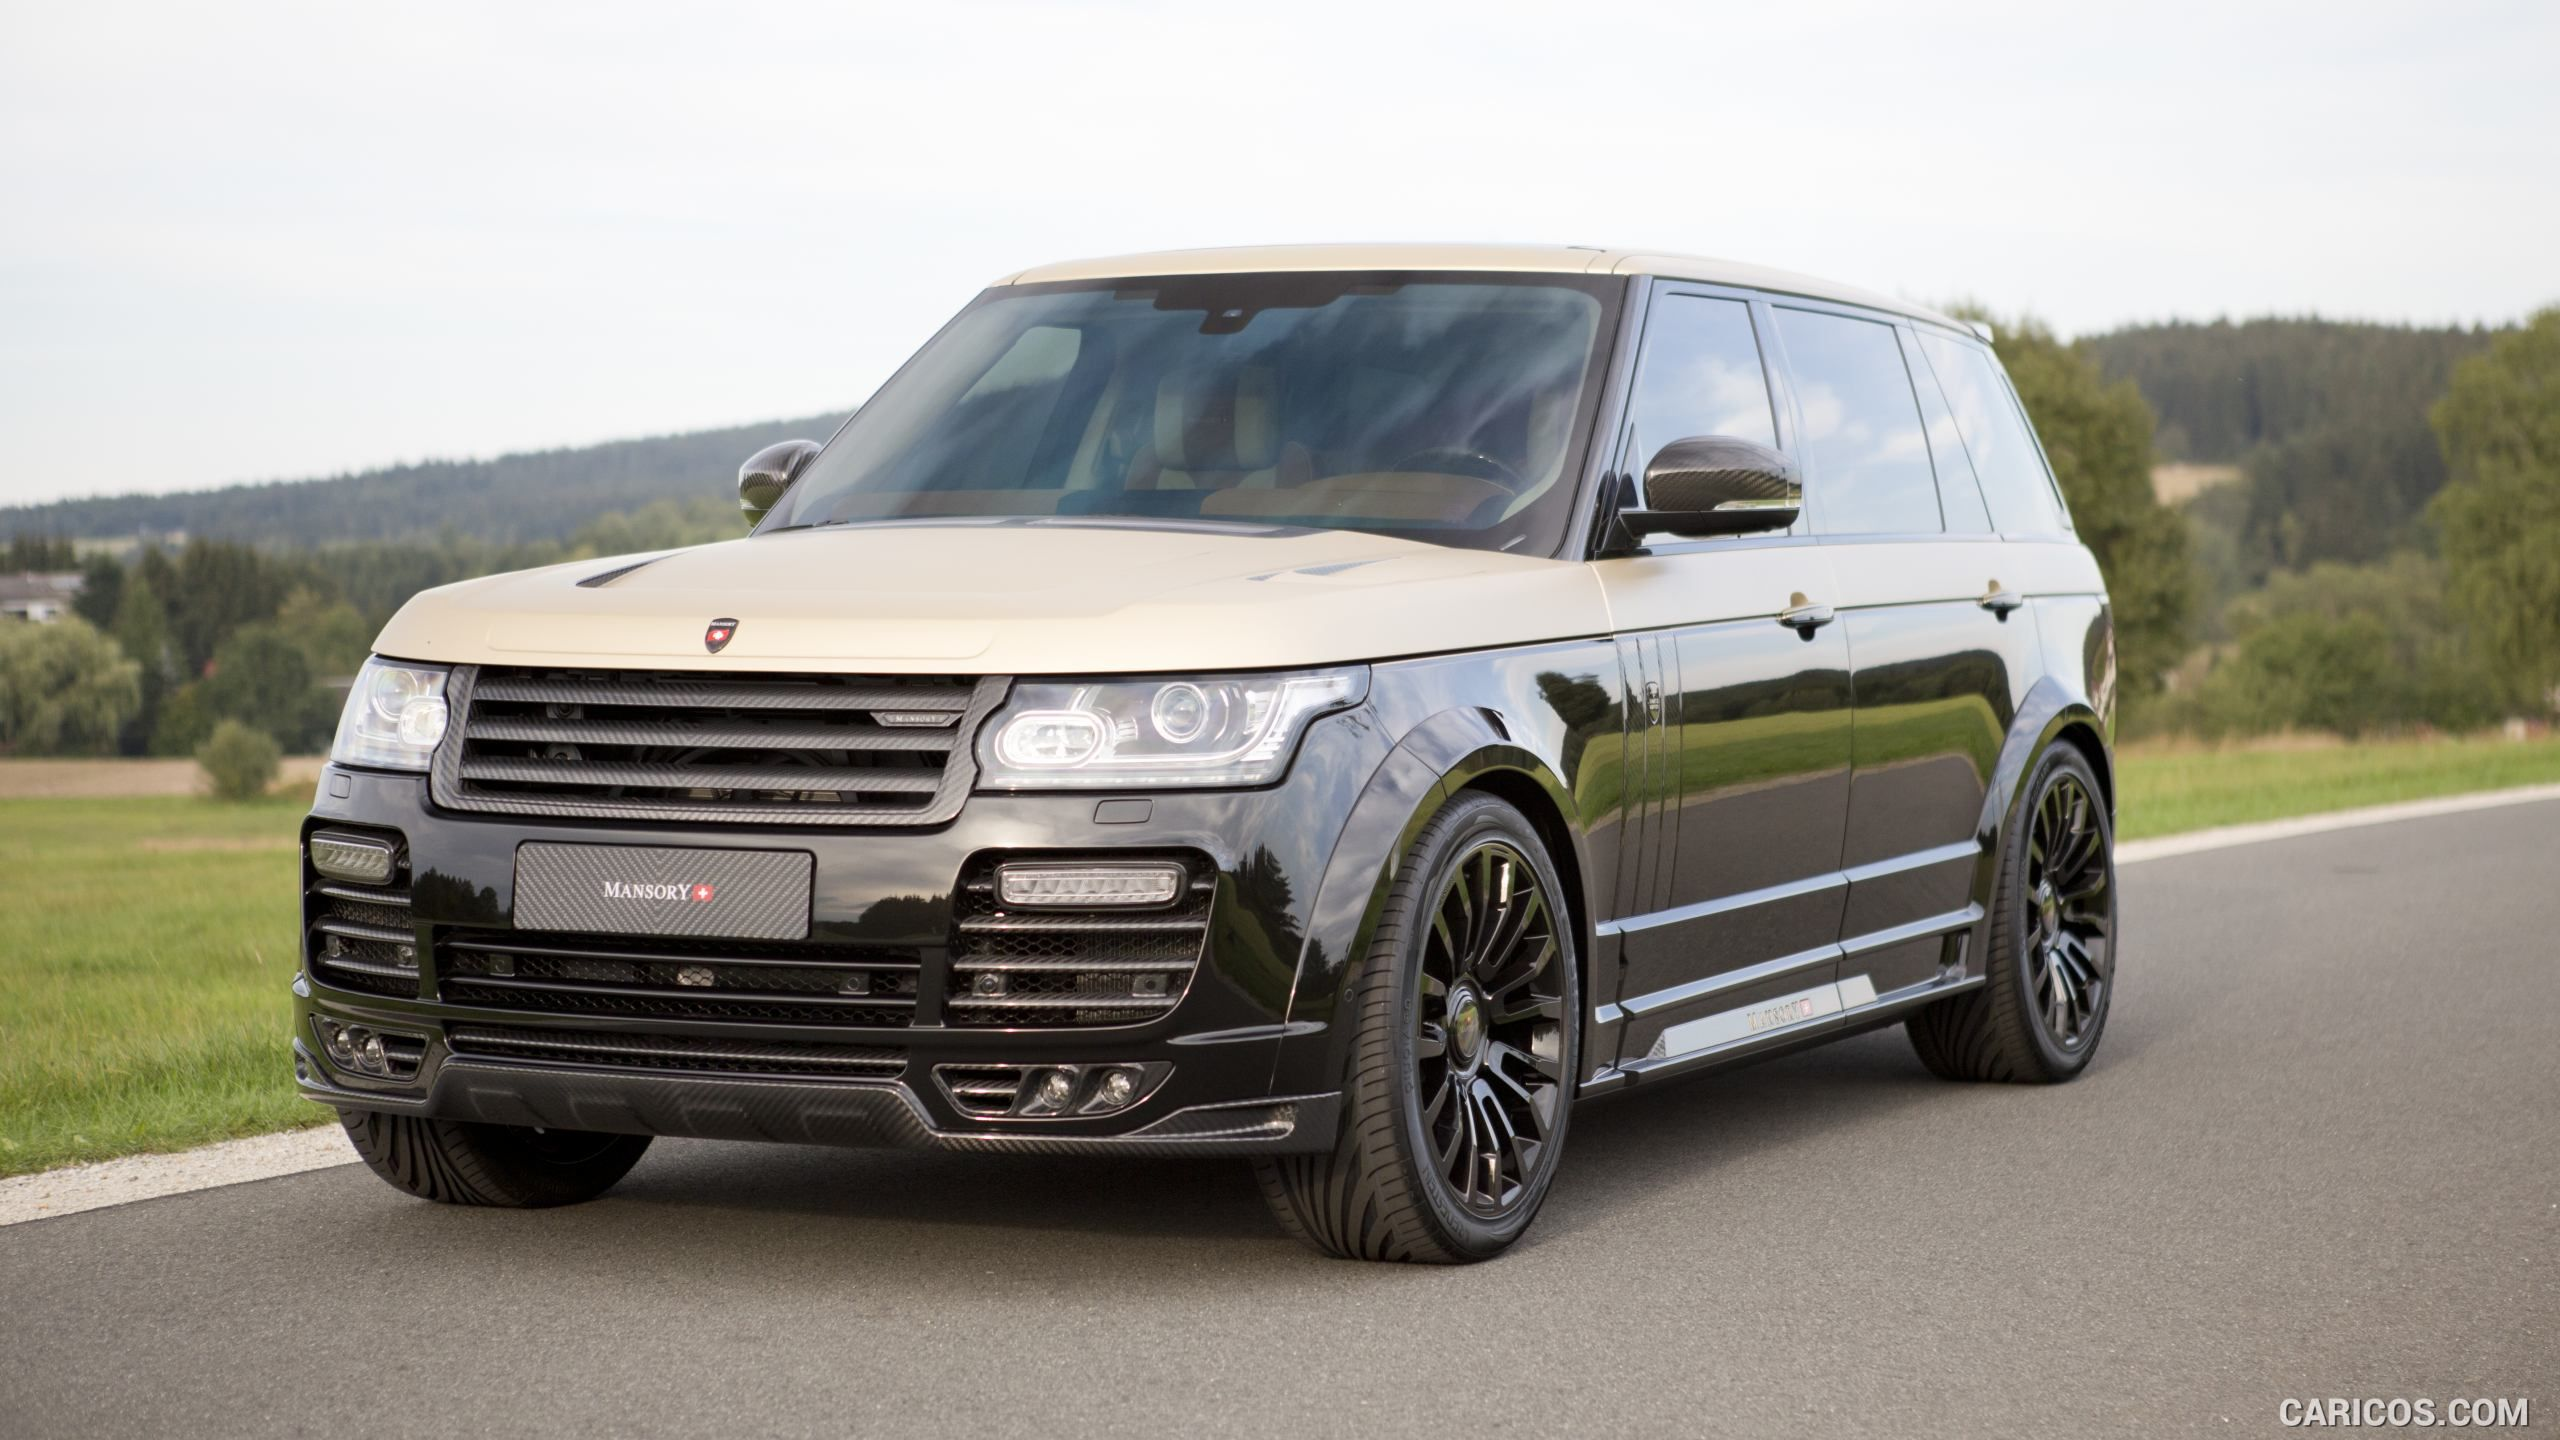 medium resolution of caricos mansory range rover autobiography extended 2016 link 12 fotos